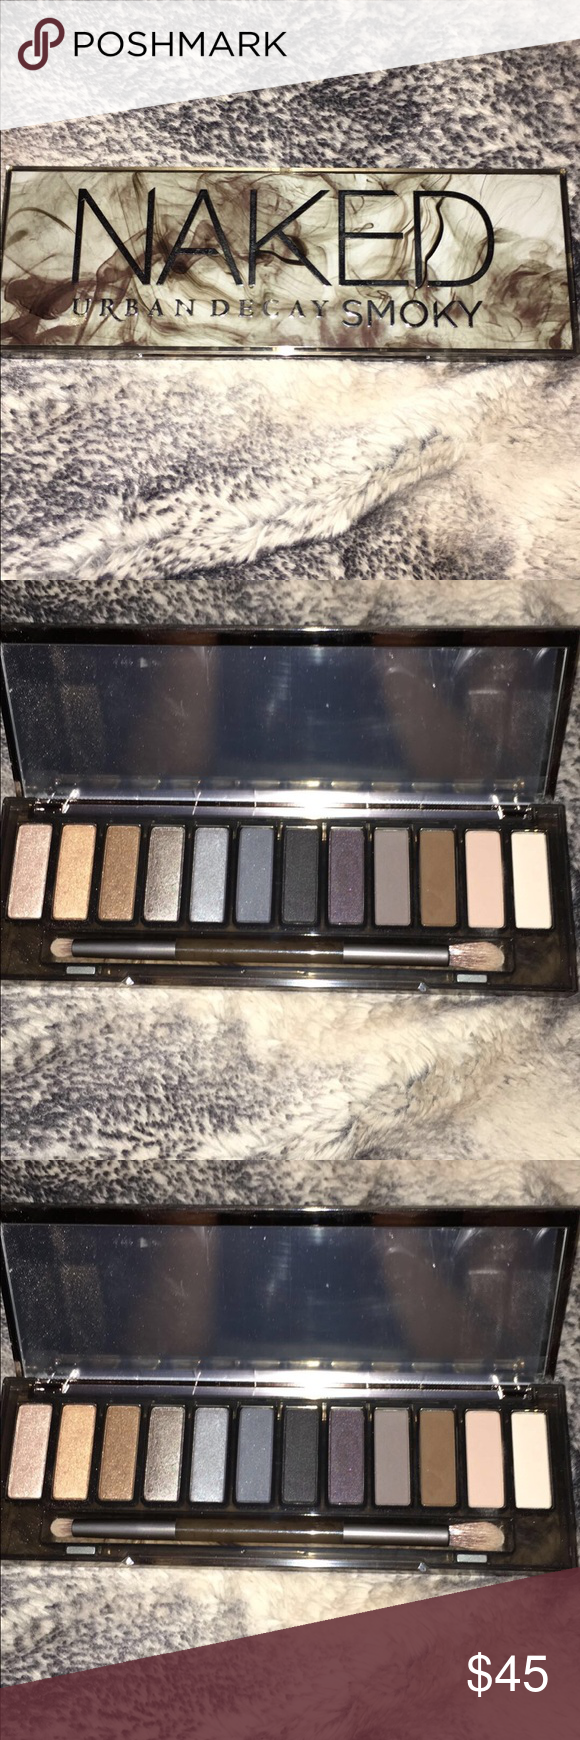 Urban Decay Smoky shadow palette Brand new, protective film is still on mirror. Original brush included. I have used one shade very lightly but you can't even tell. Perfect condition, beautiful shades! Offers accepted, please just use the offer botton! 😊 Urban Decay Makeup Eyeshadow